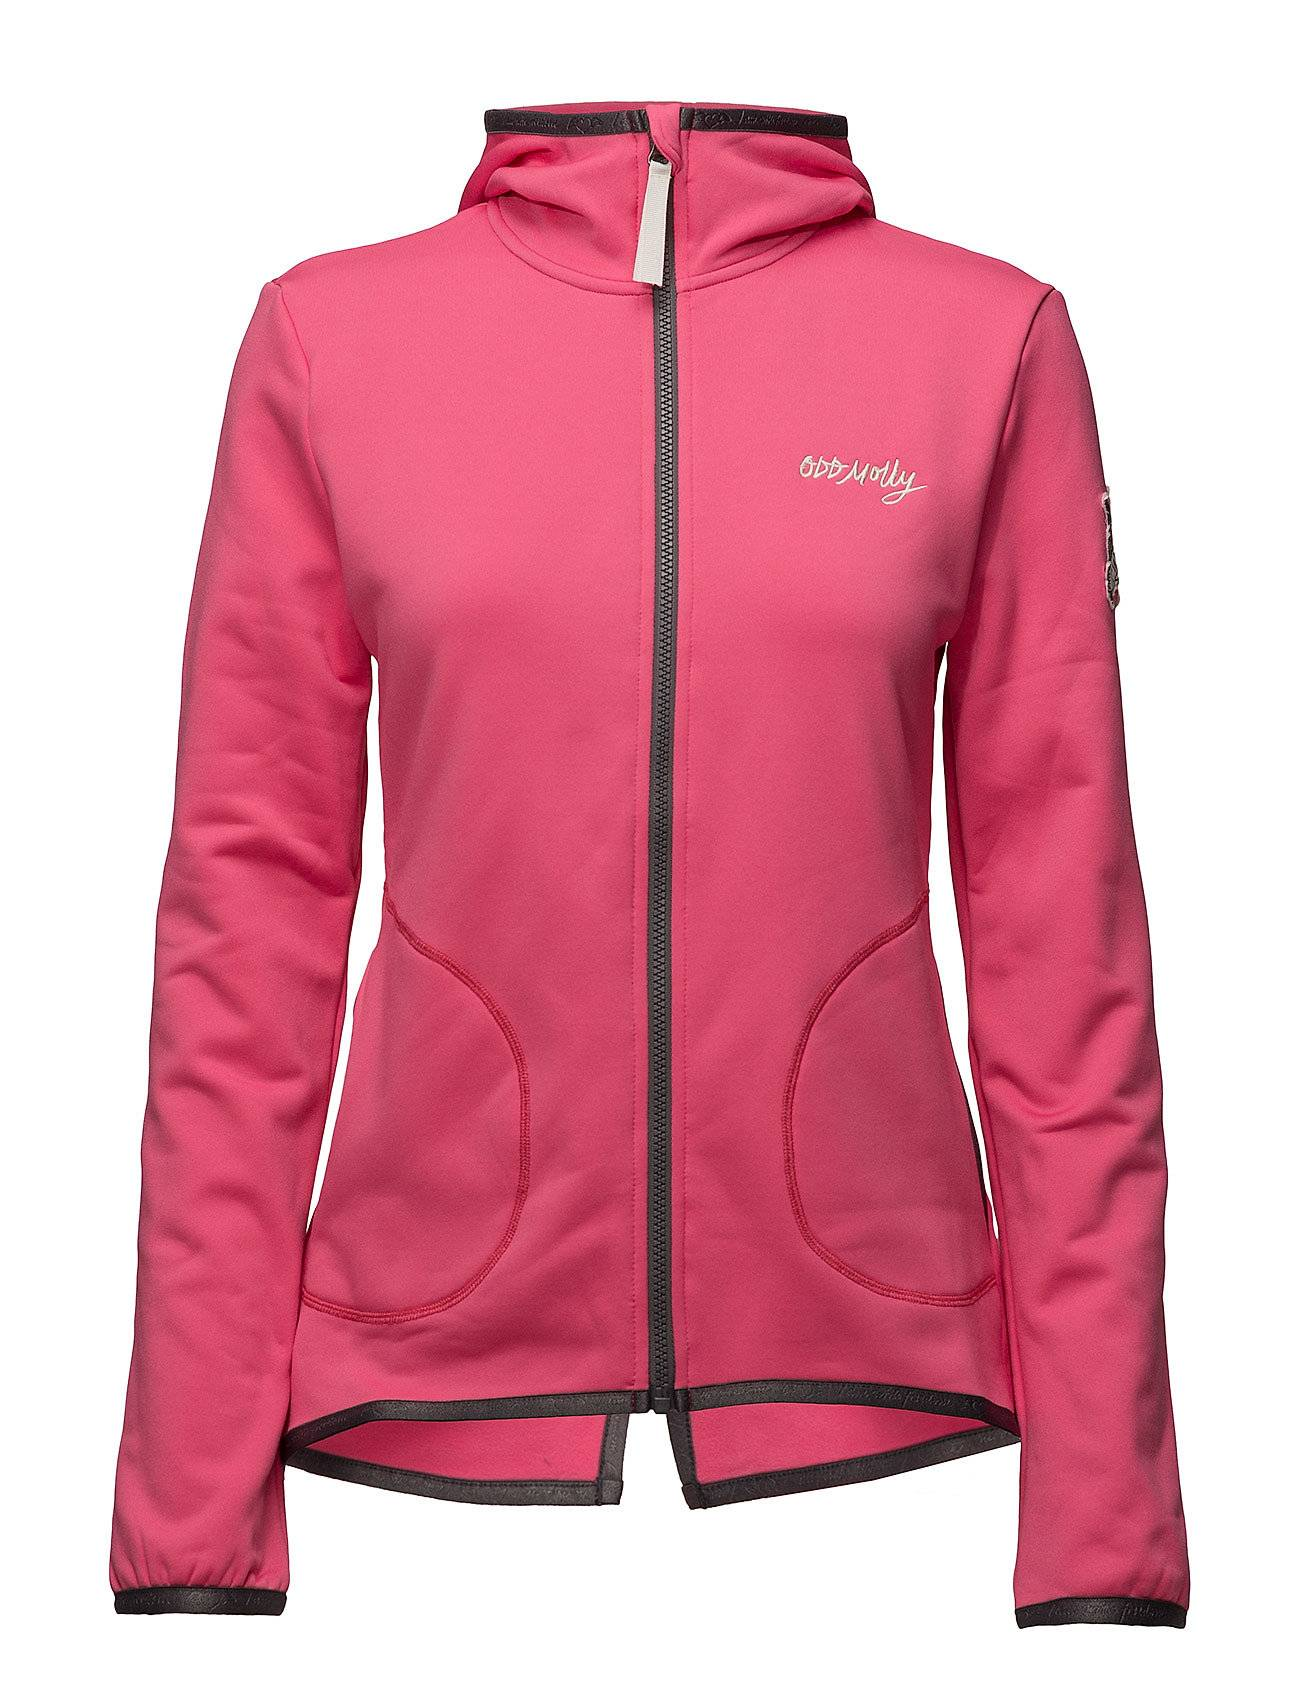 ODD MOLLY ACTIVE WEAR Storm Mid Layer Jacket